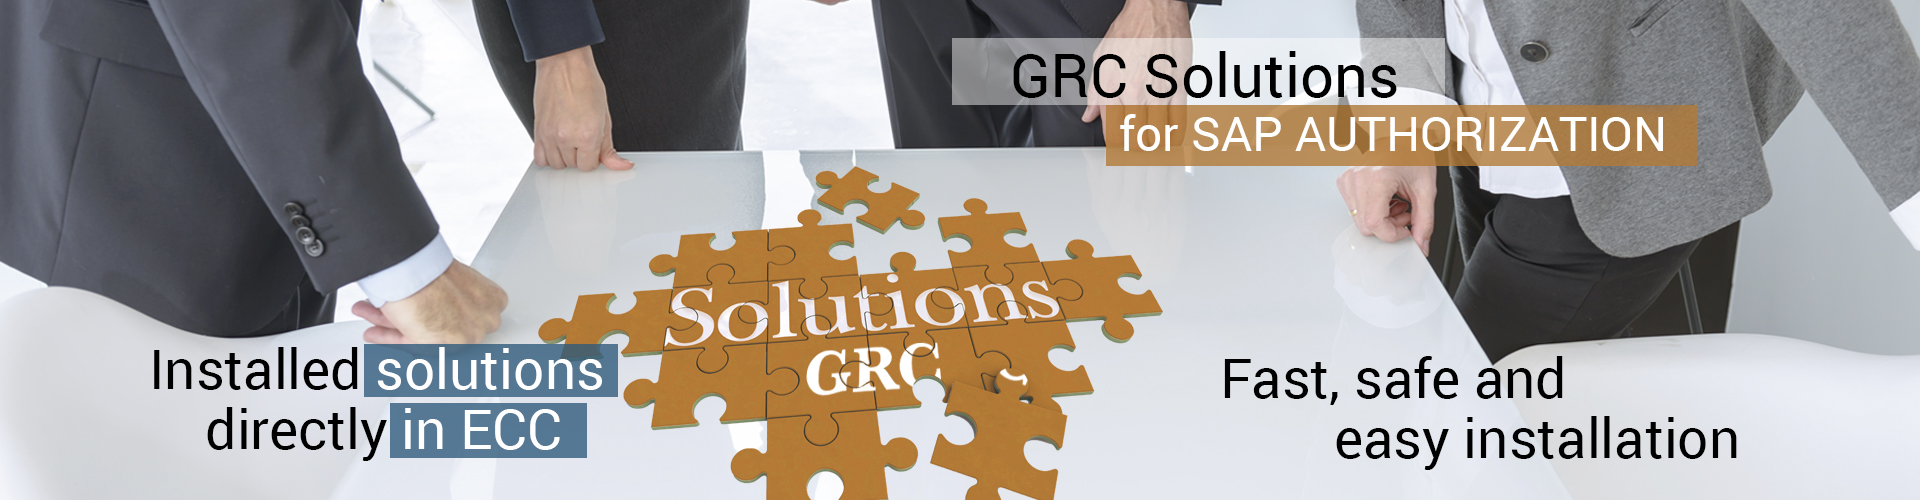 GRC Solutions for SAP authorizations